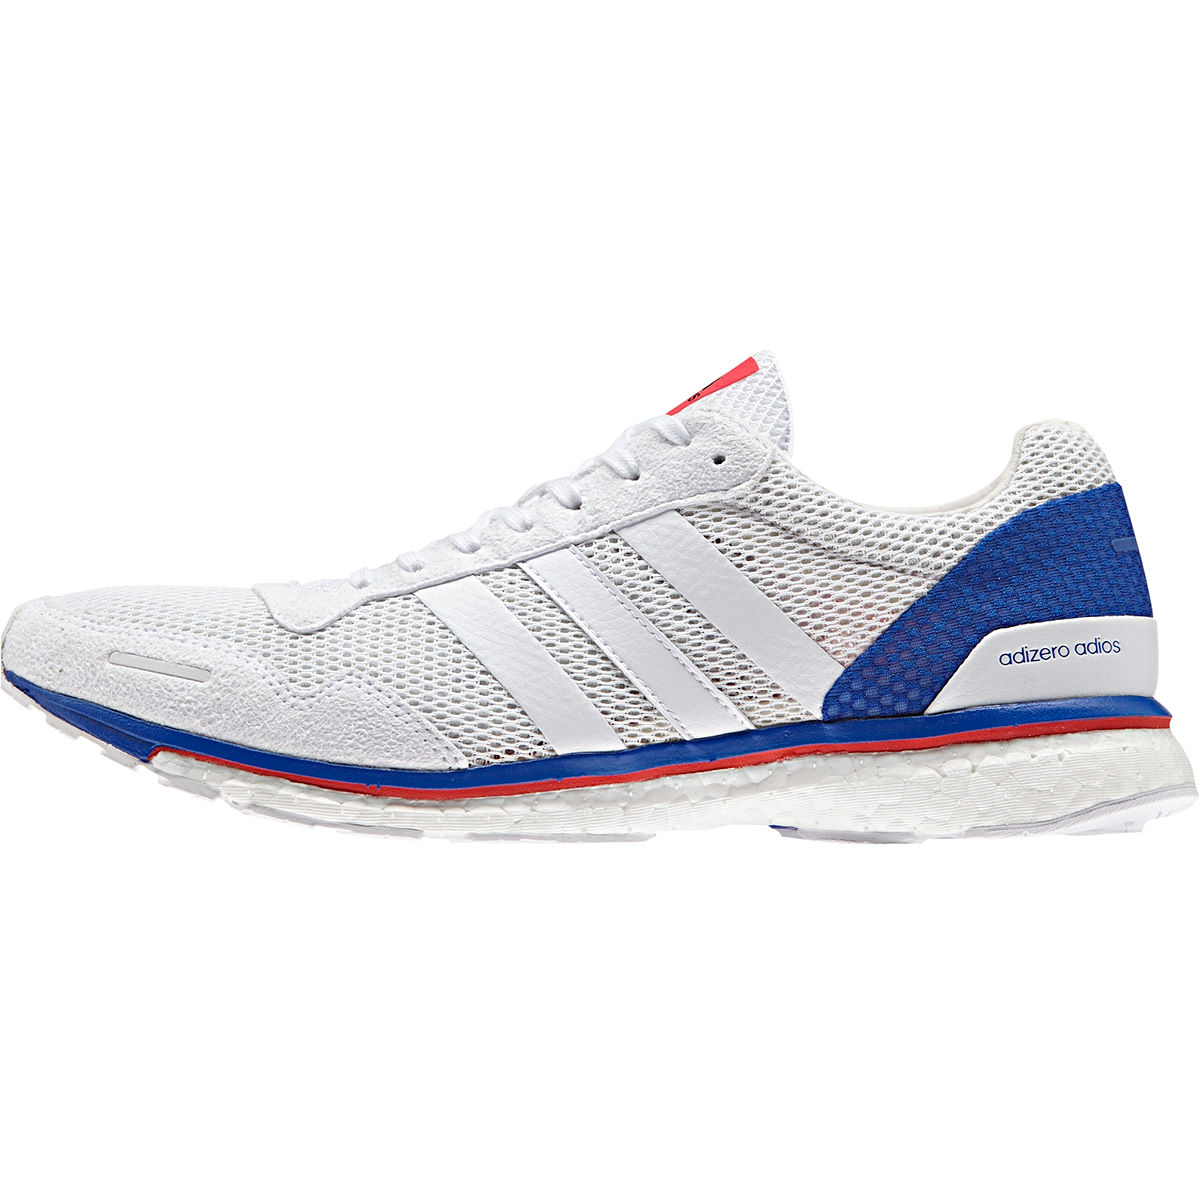 Adidas Adizero Tempo Aktiv Running Shoes White